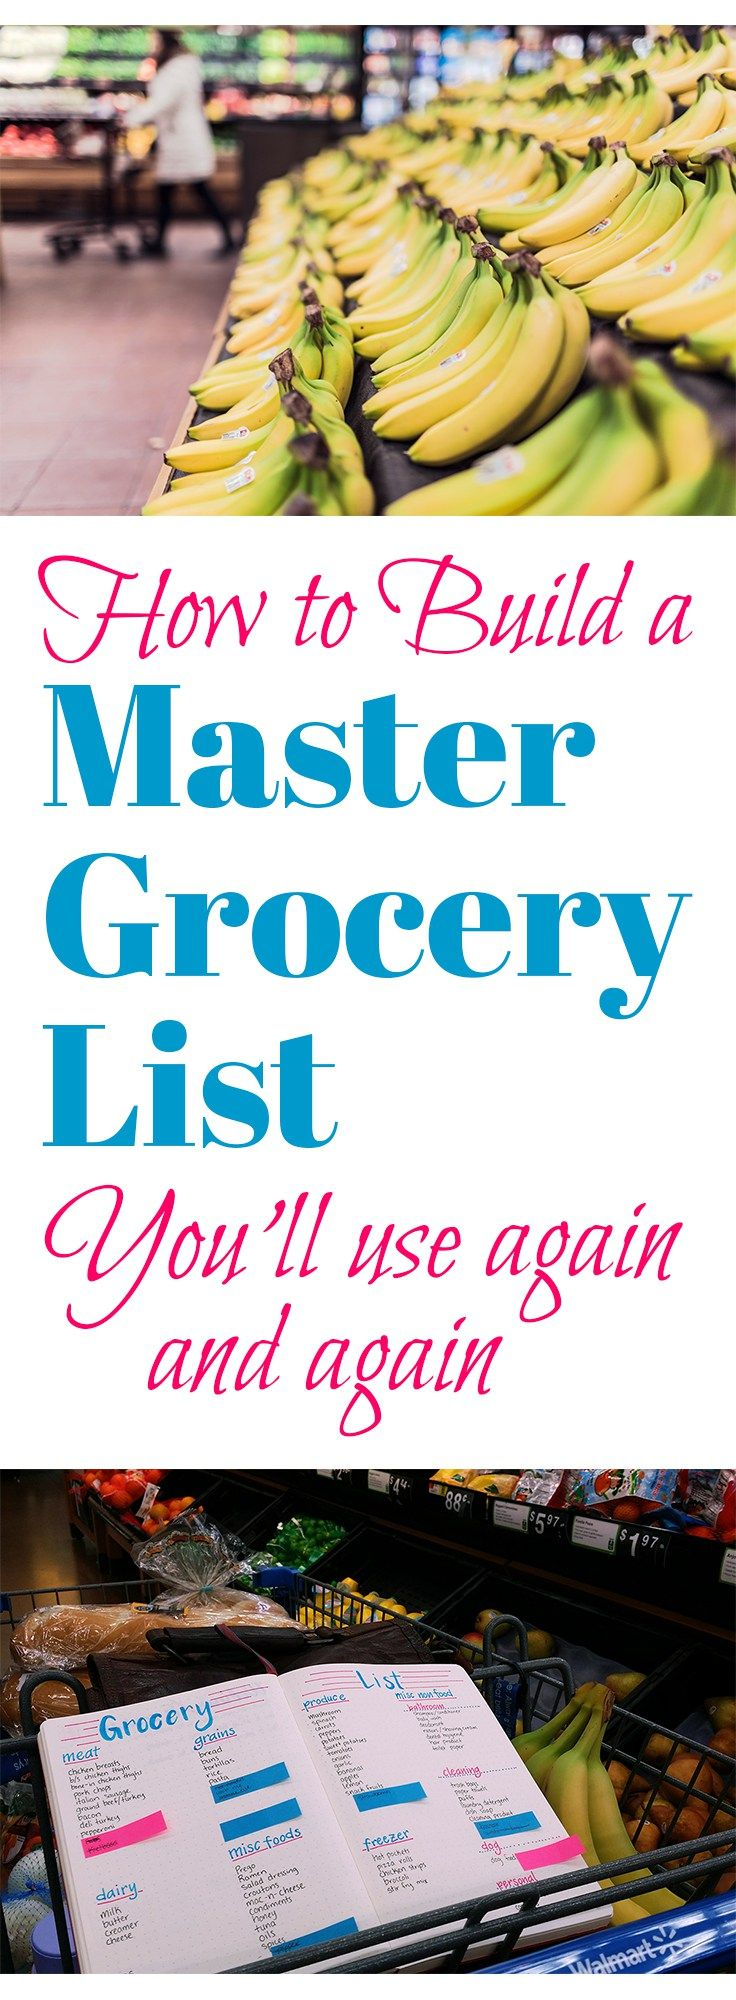 Grocery shopping is always a drag for me, so I found a way to make it a bit cheerier and a ton more efficient with the Master Grocery List!